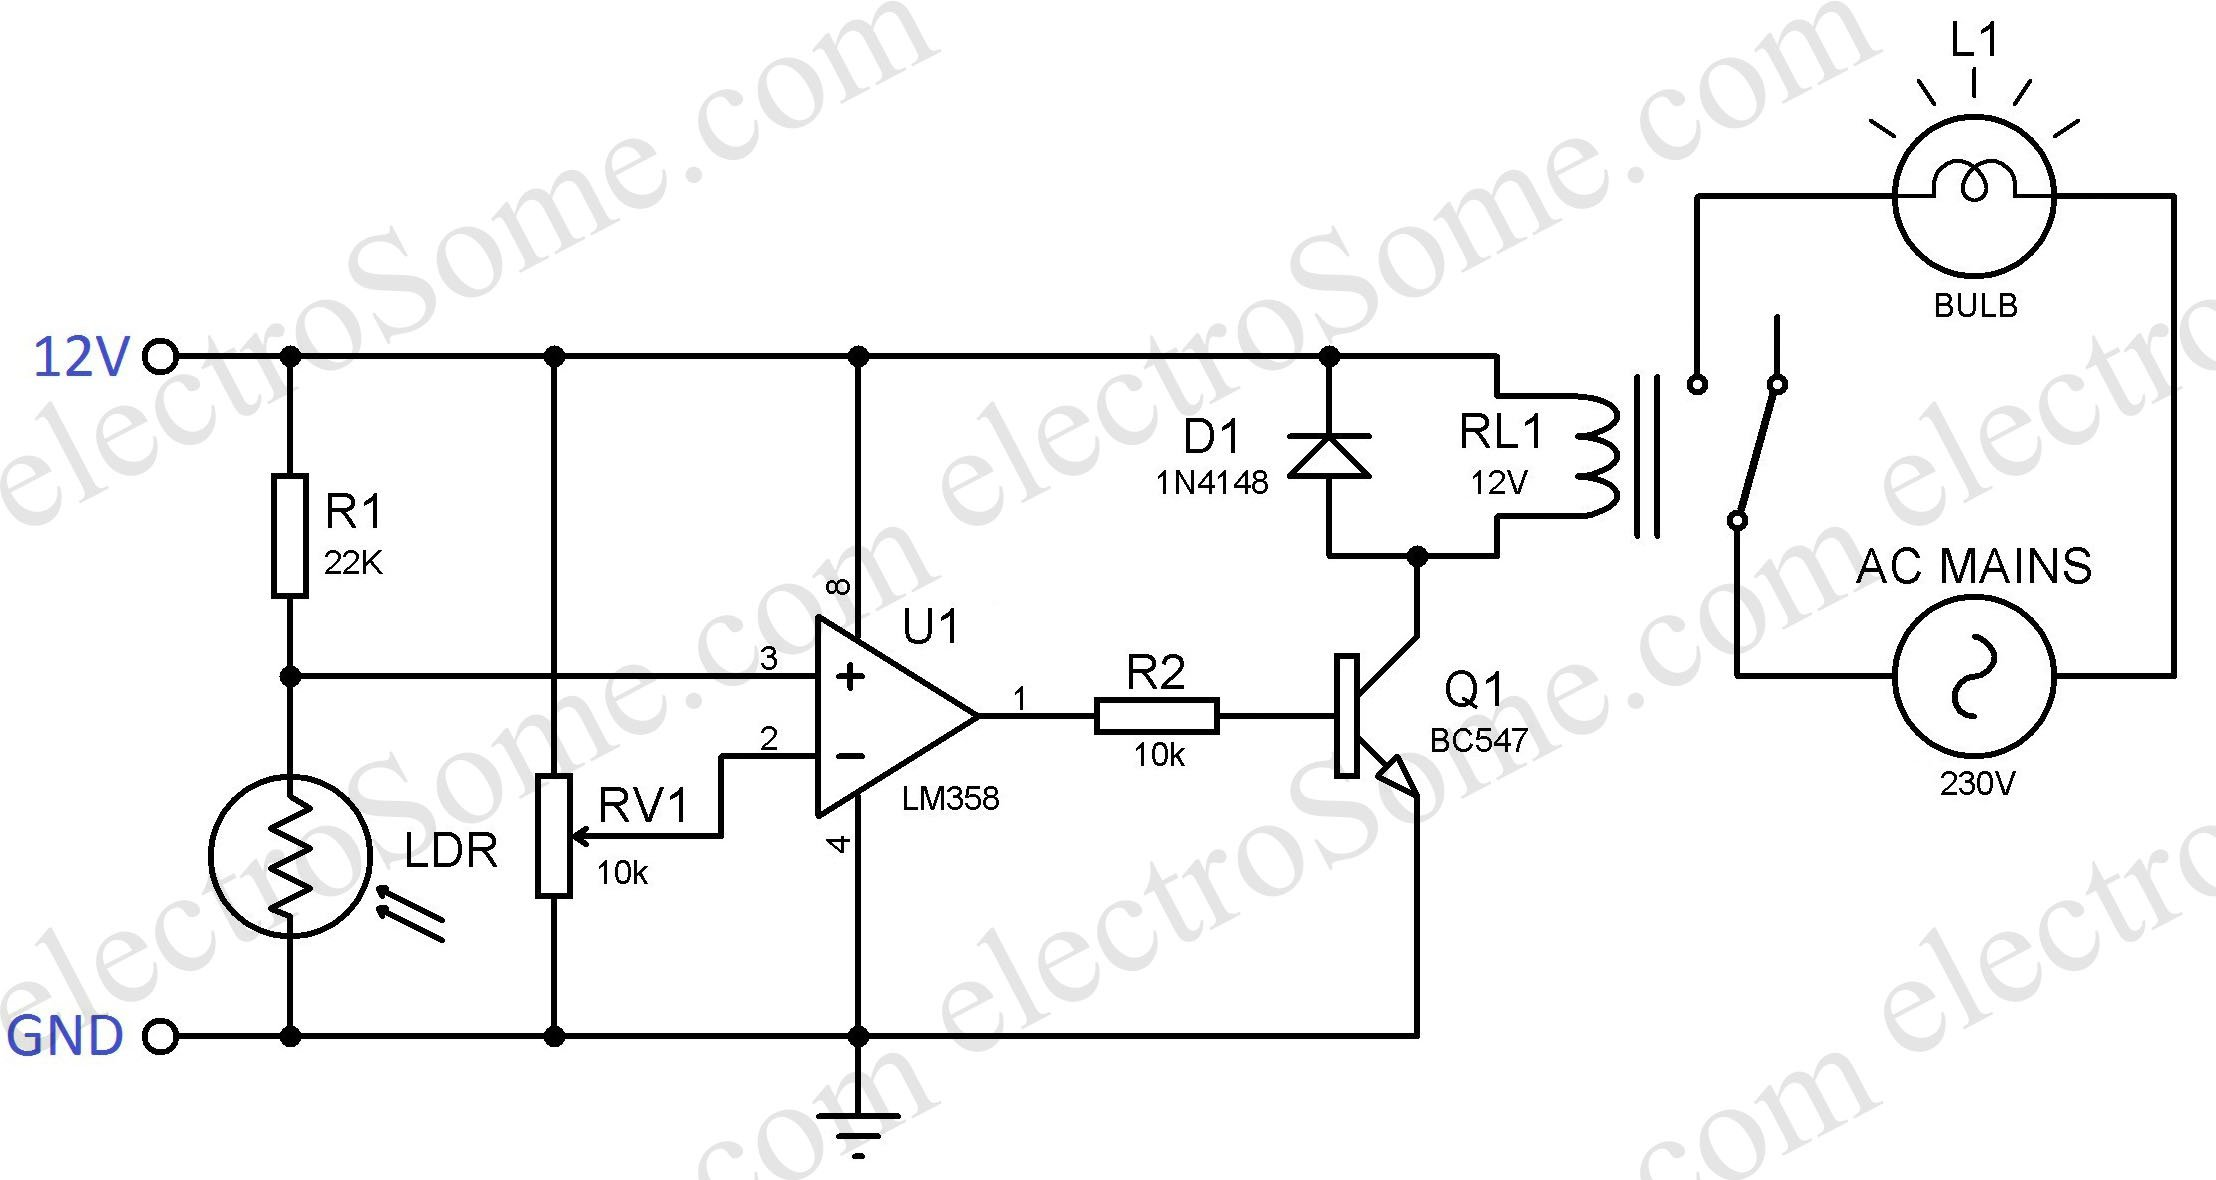 Automatic Light Activated Switch Circuit Schematic Wire Center Wiring Diagram Archives Page 2 Of 12 Binatanicom Night Lamp Using Ldr Rh Electrosome Com 3 Way Pilot Electrical